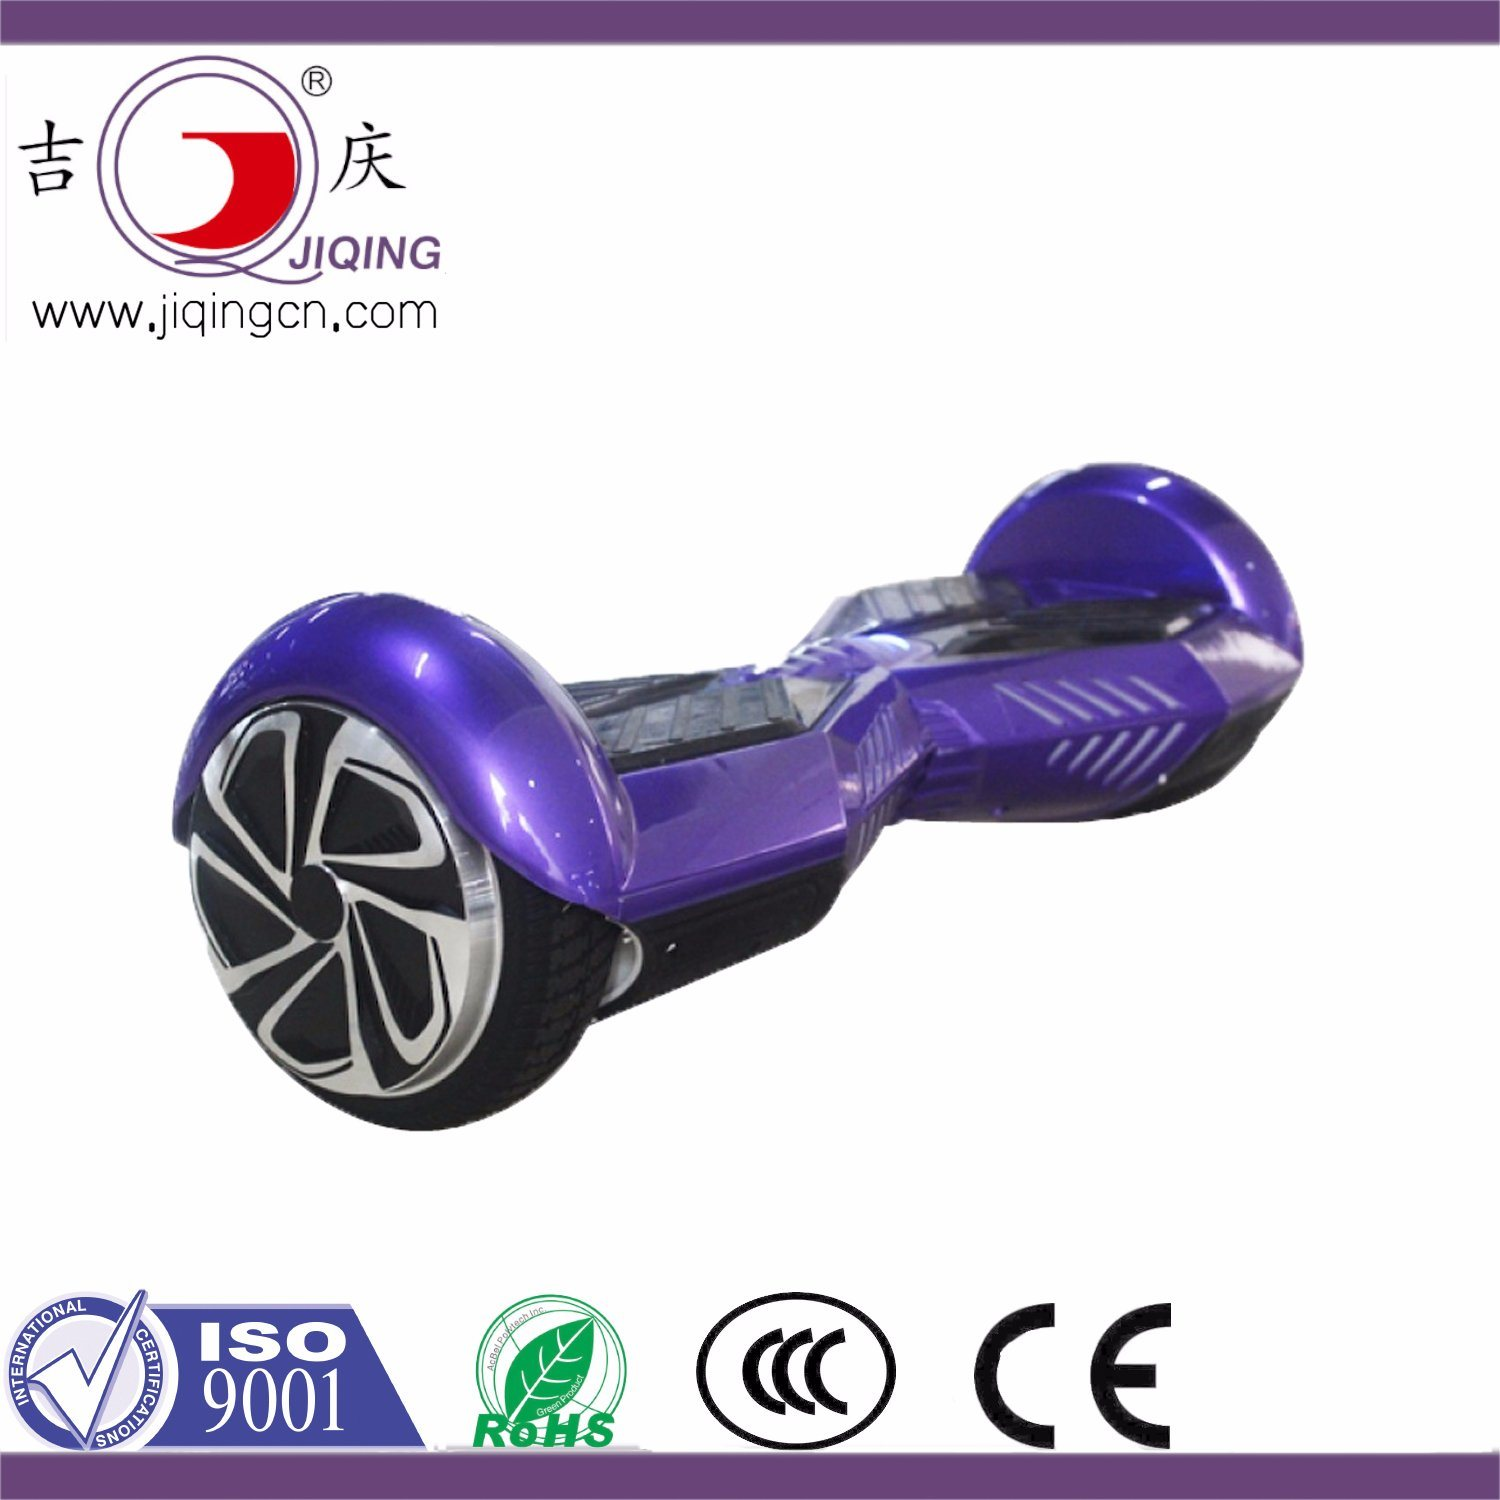 36V Aluminum Alloy Smart Electric Scooter